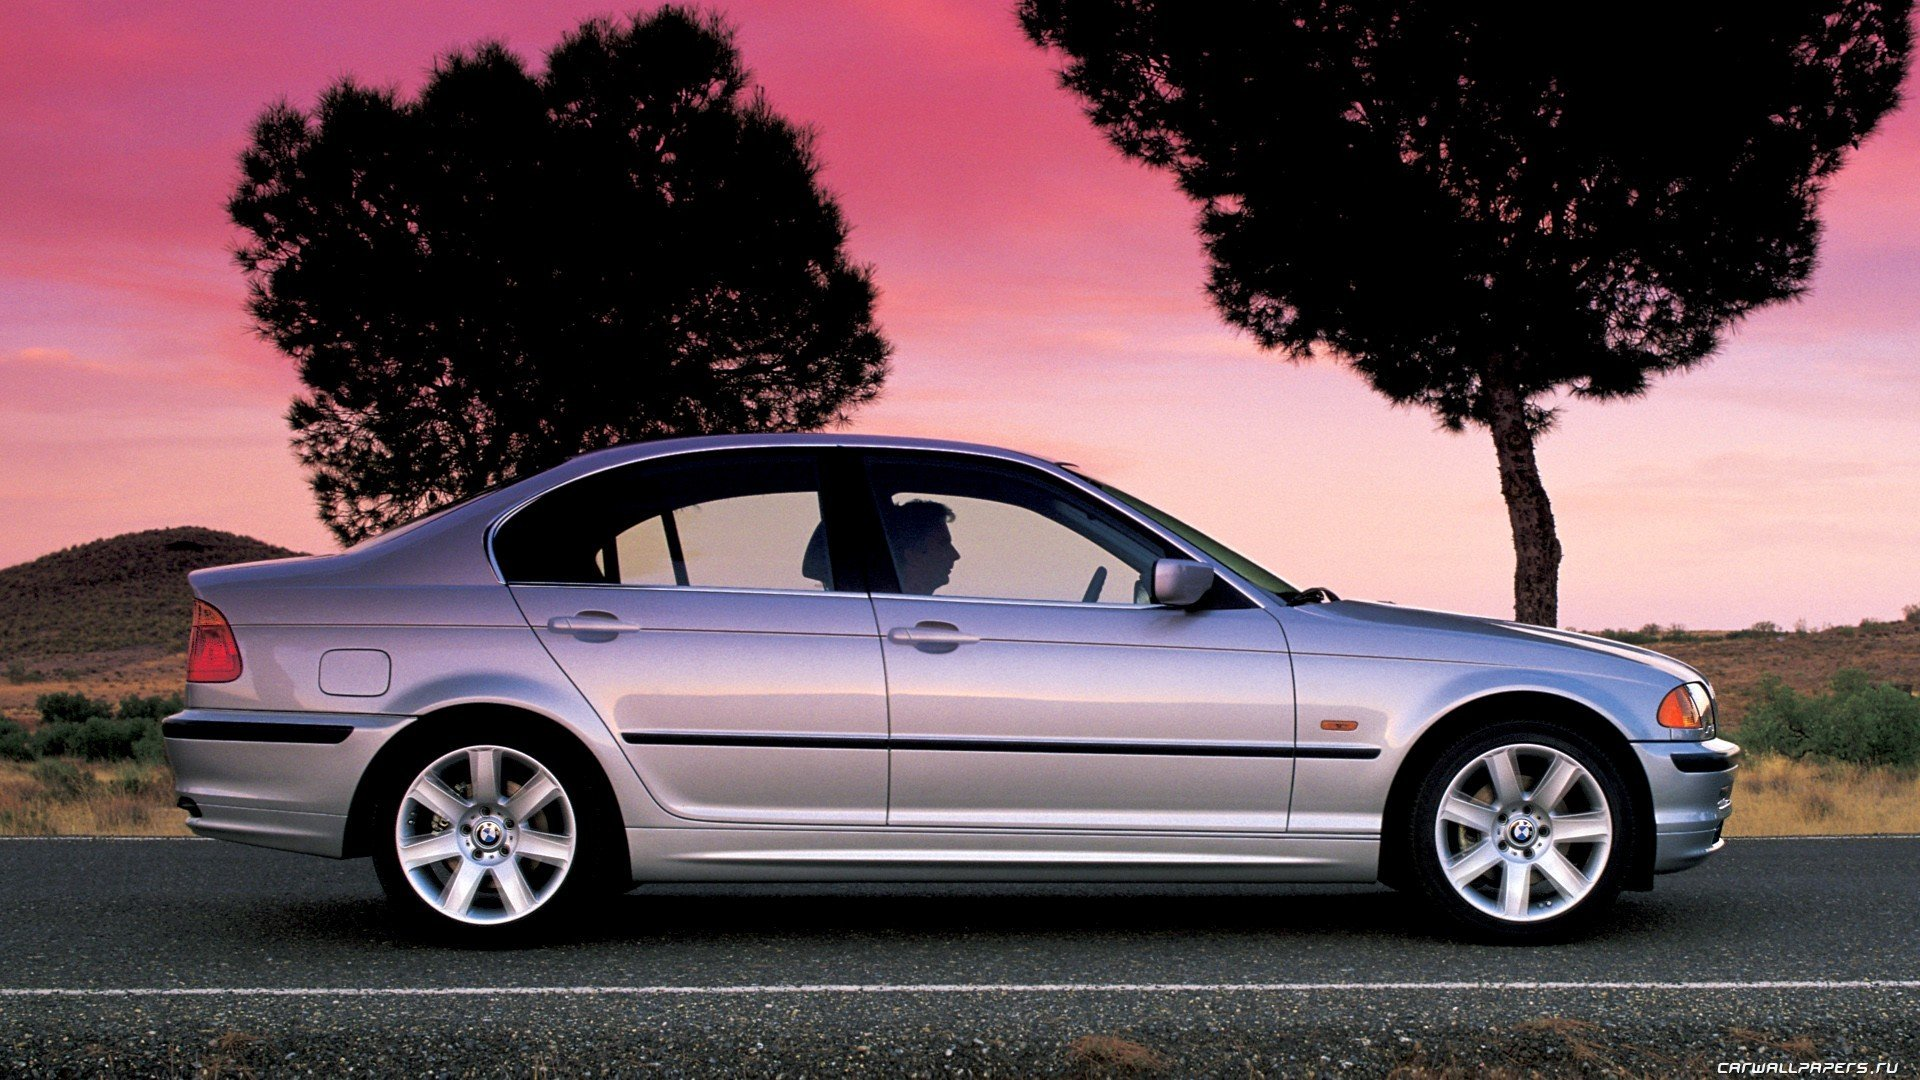 64 Bmw E46 Wallpapers on WallpaperPlay 1920x1080